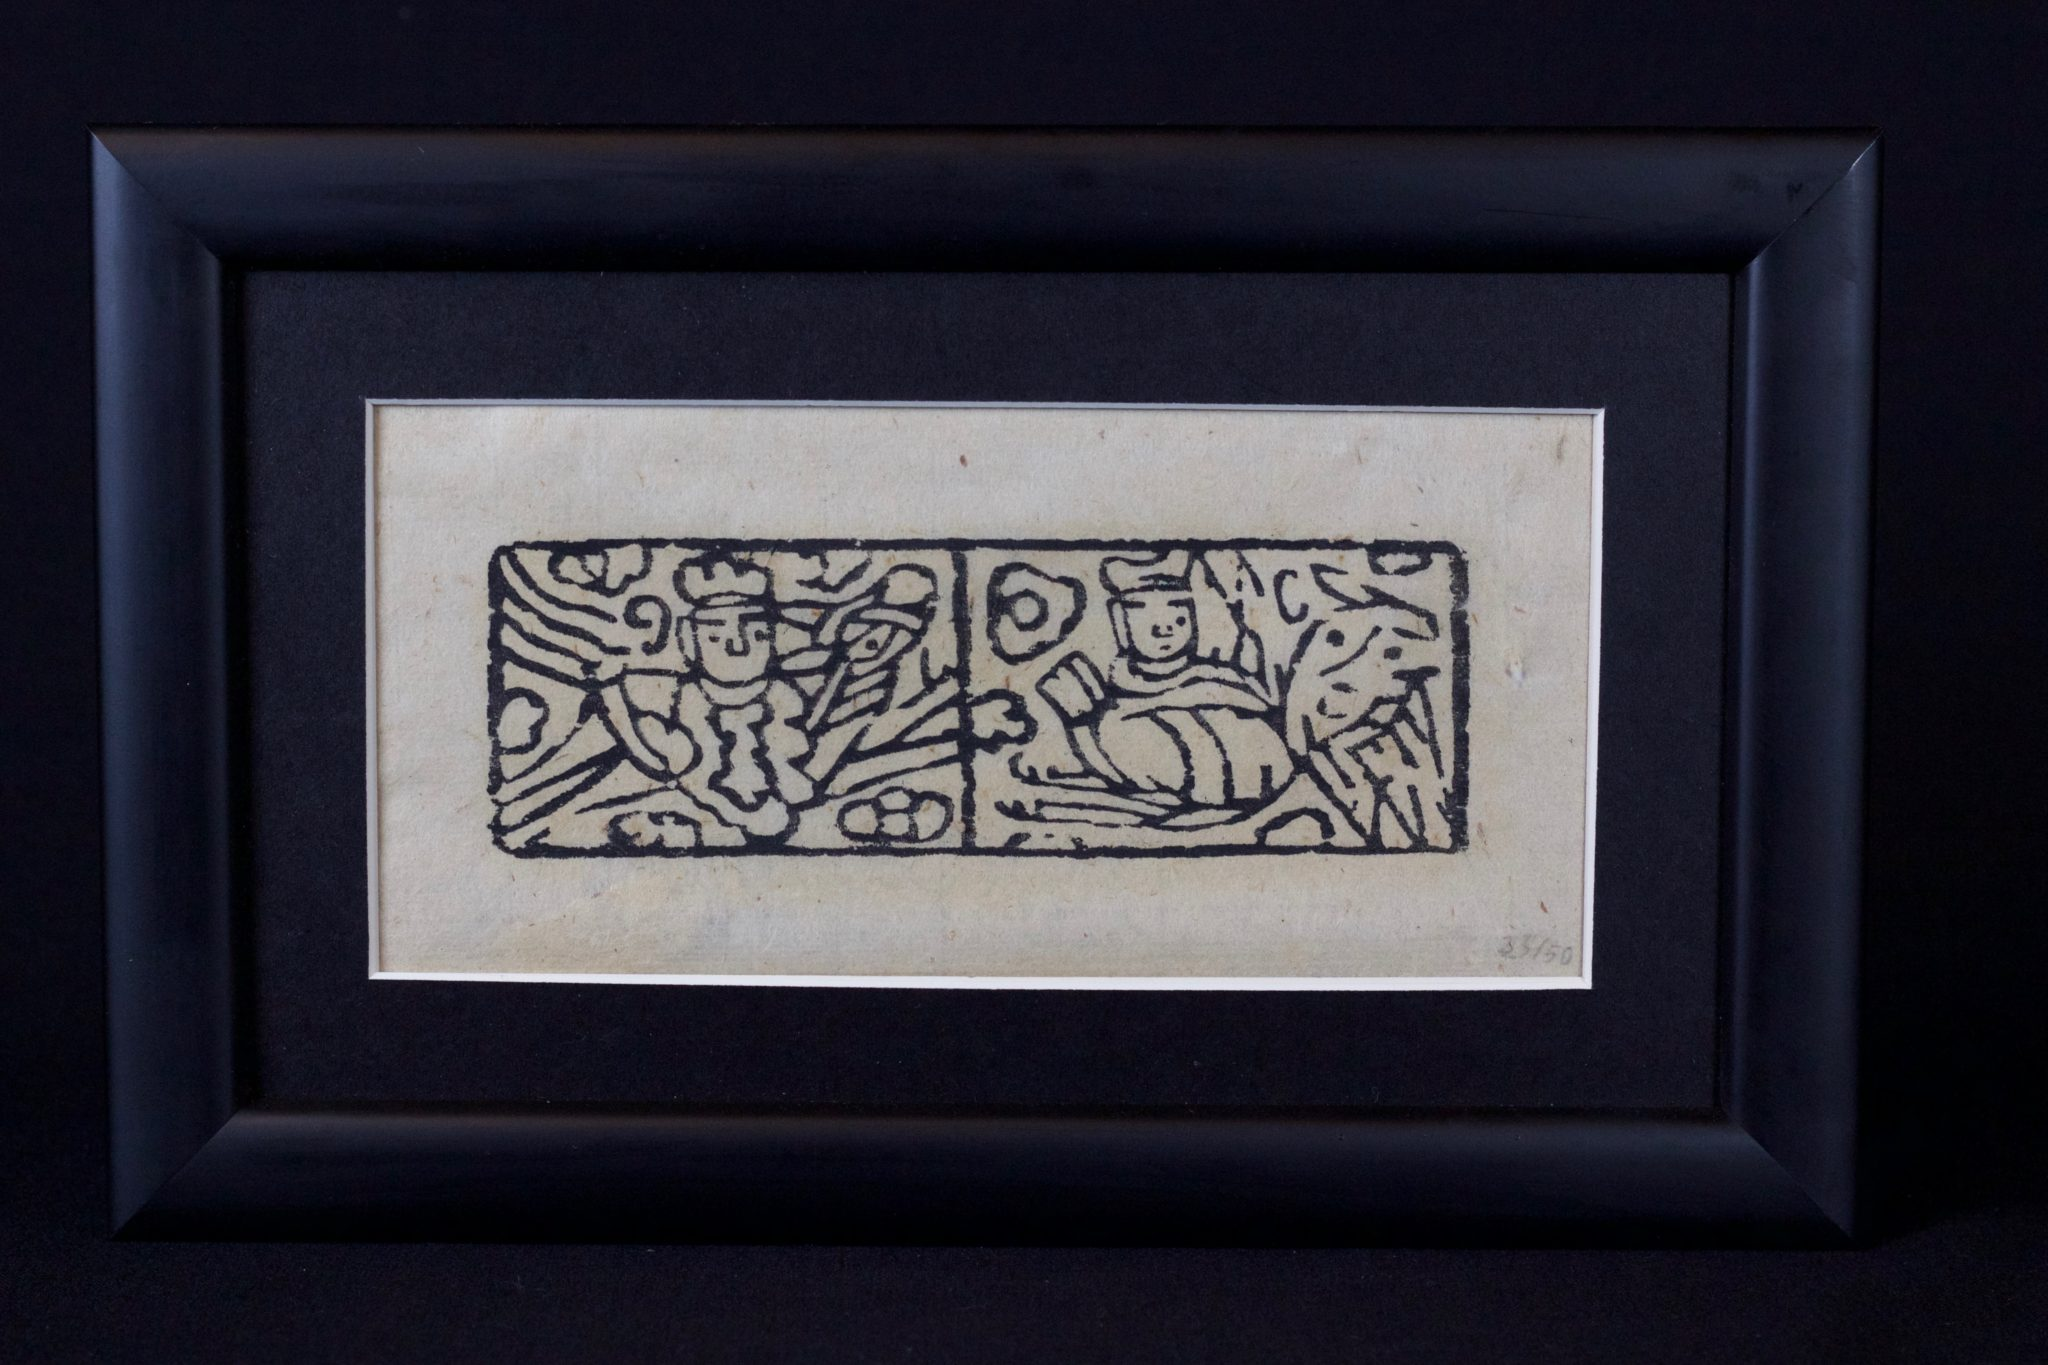 "Shamanic Print, Man with Horse / Man with Bird, Vietnam, Hoa Binh province,Dao Quan Chet people, Contemporary, Pigment printed on handmade *Do paper from a shamanic hand carved printing block. The print would be burned for carting a message to deities for protecting people against evil spirits. *Do is made from the bark of Rhamnoneuron balansae The print would be burned for carting a message to deities for protecting people against evil spirits 7"" x 10 ¾"" x ¾"", $55."